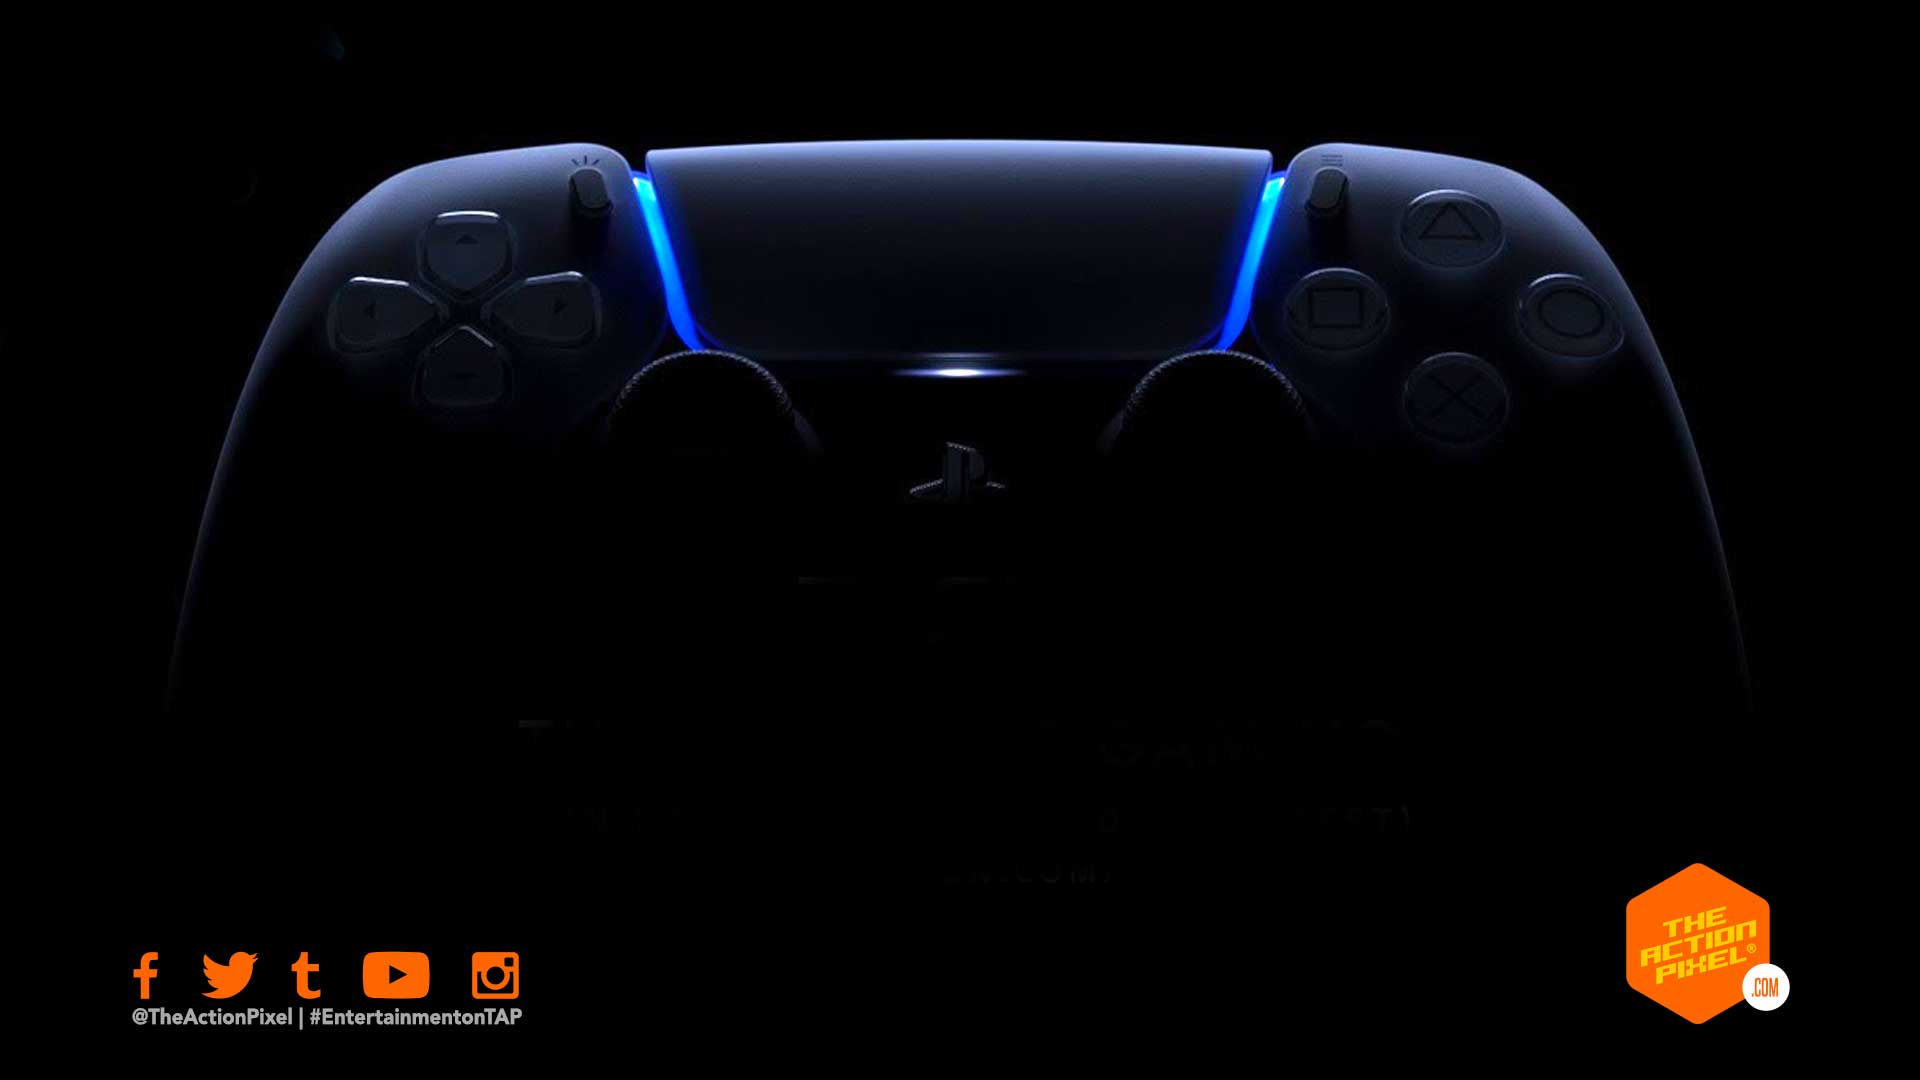 playstation 5 controller, ps5, playstation 5, the future of gaming, ps5 the future of gaming